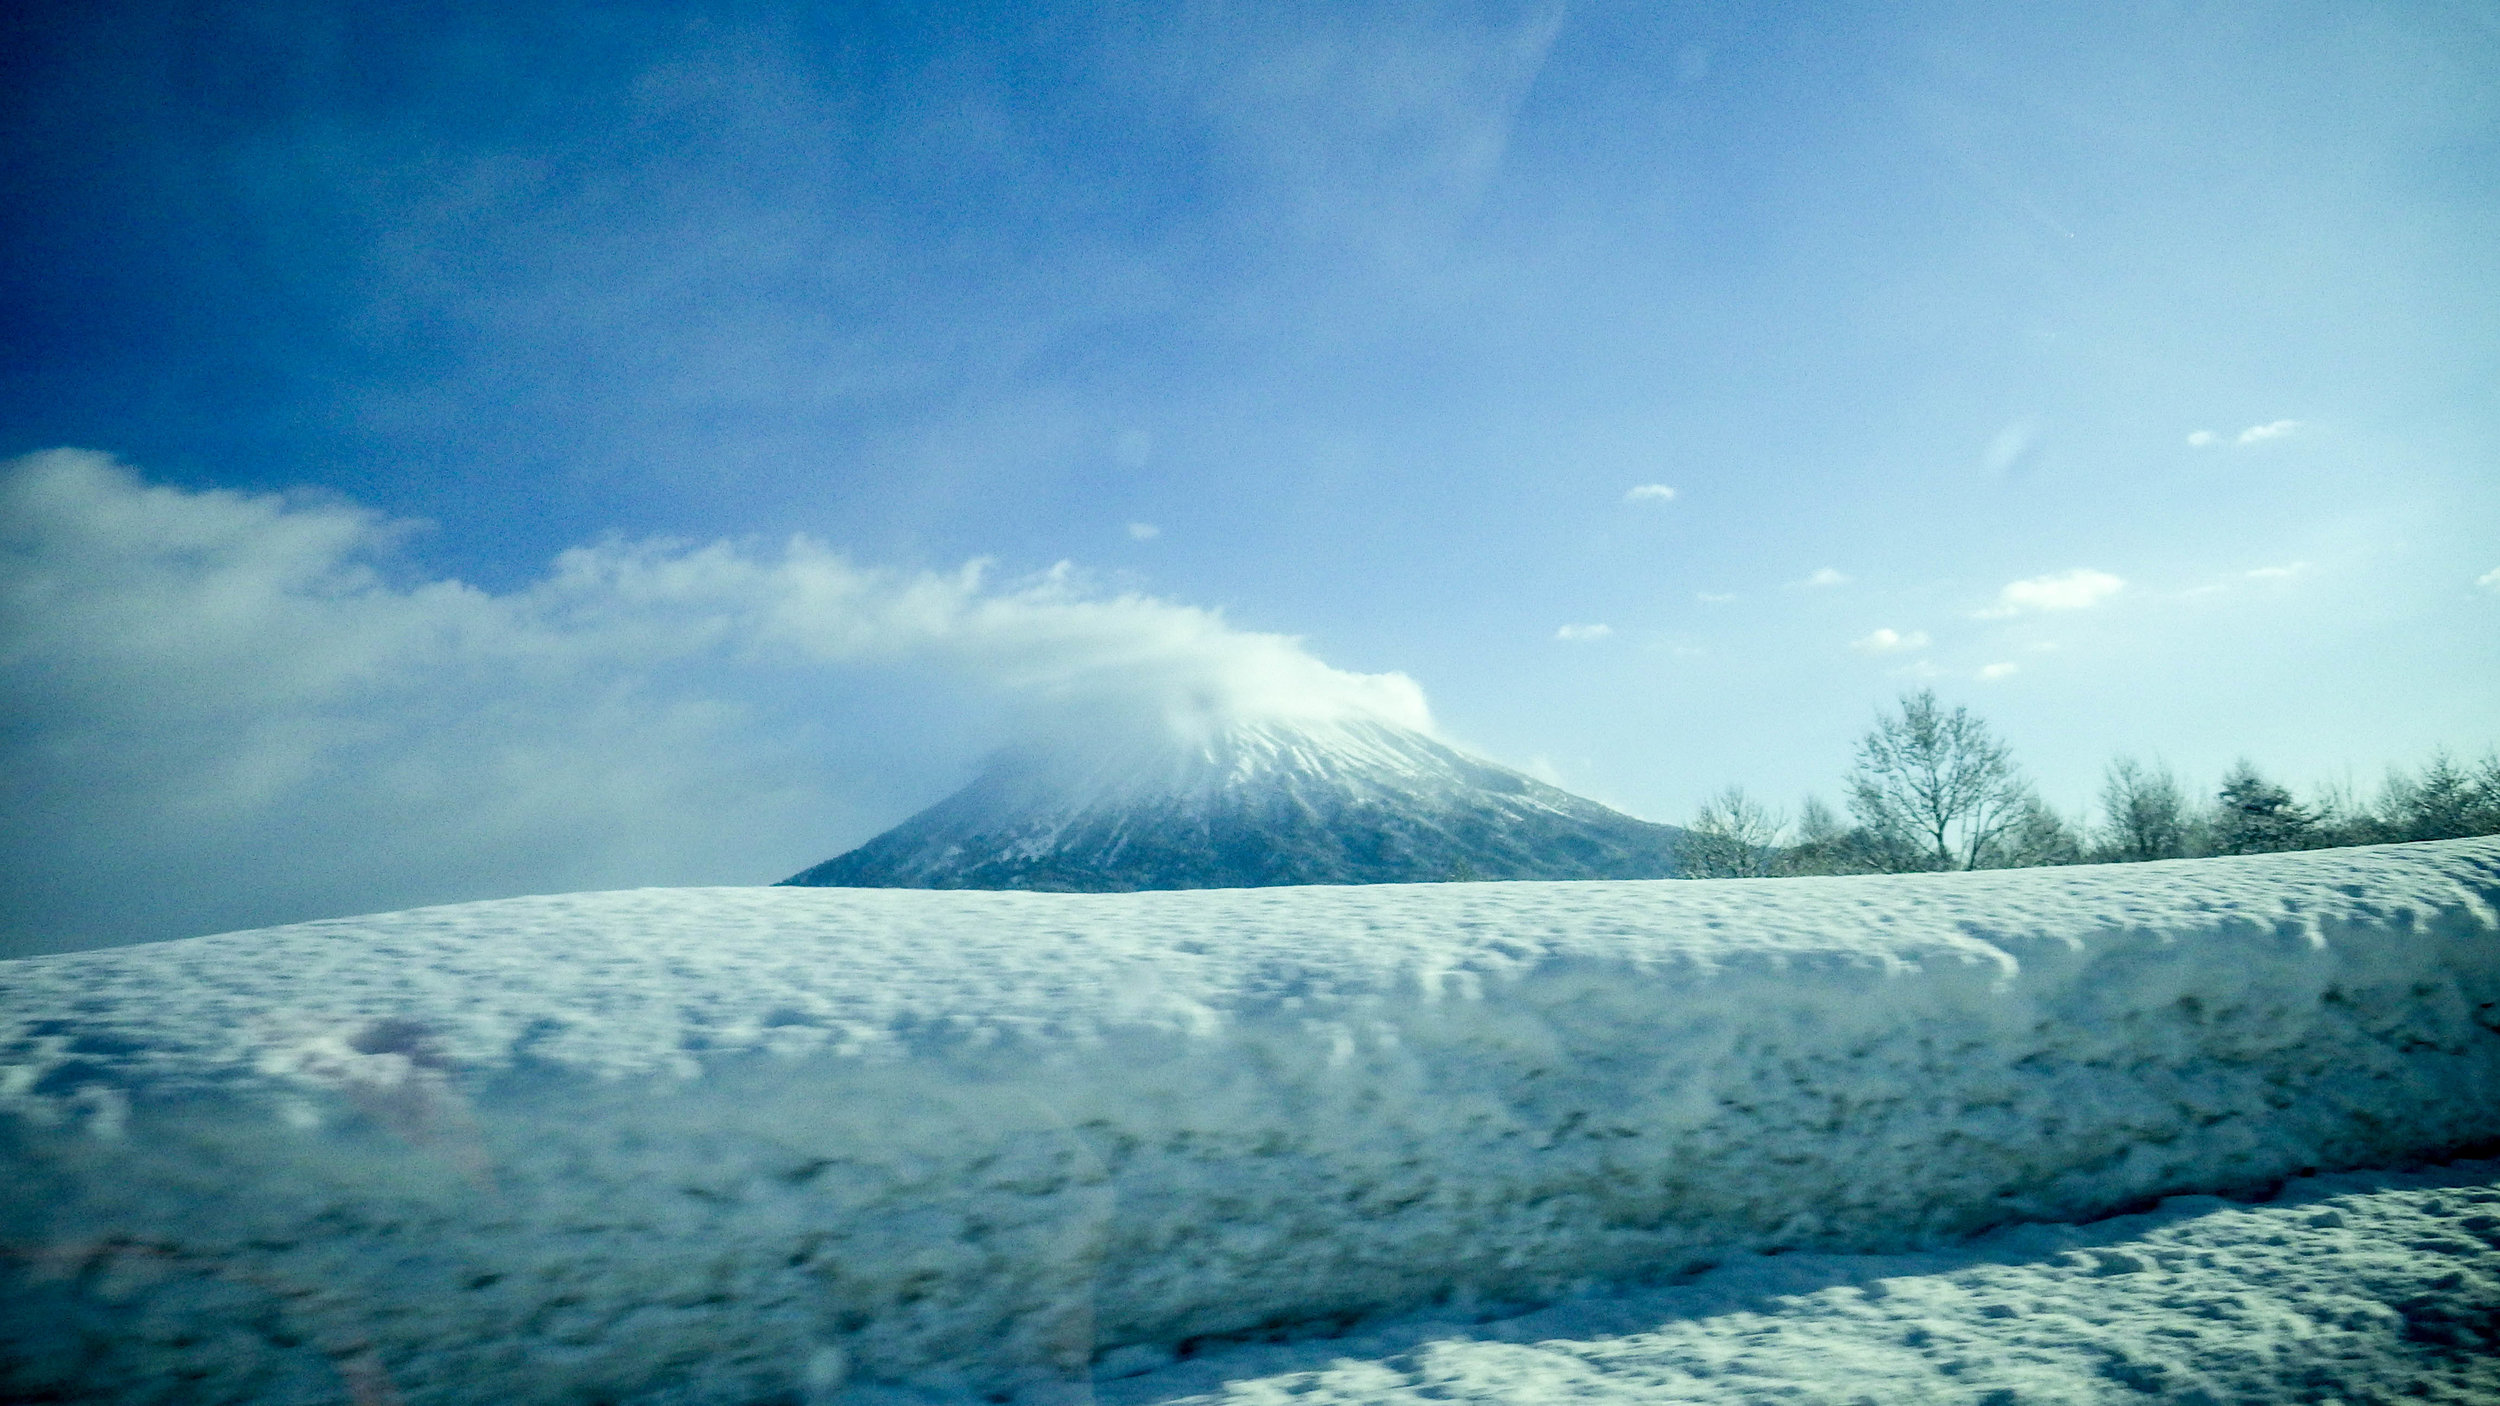 Mt. Yotei from our car window